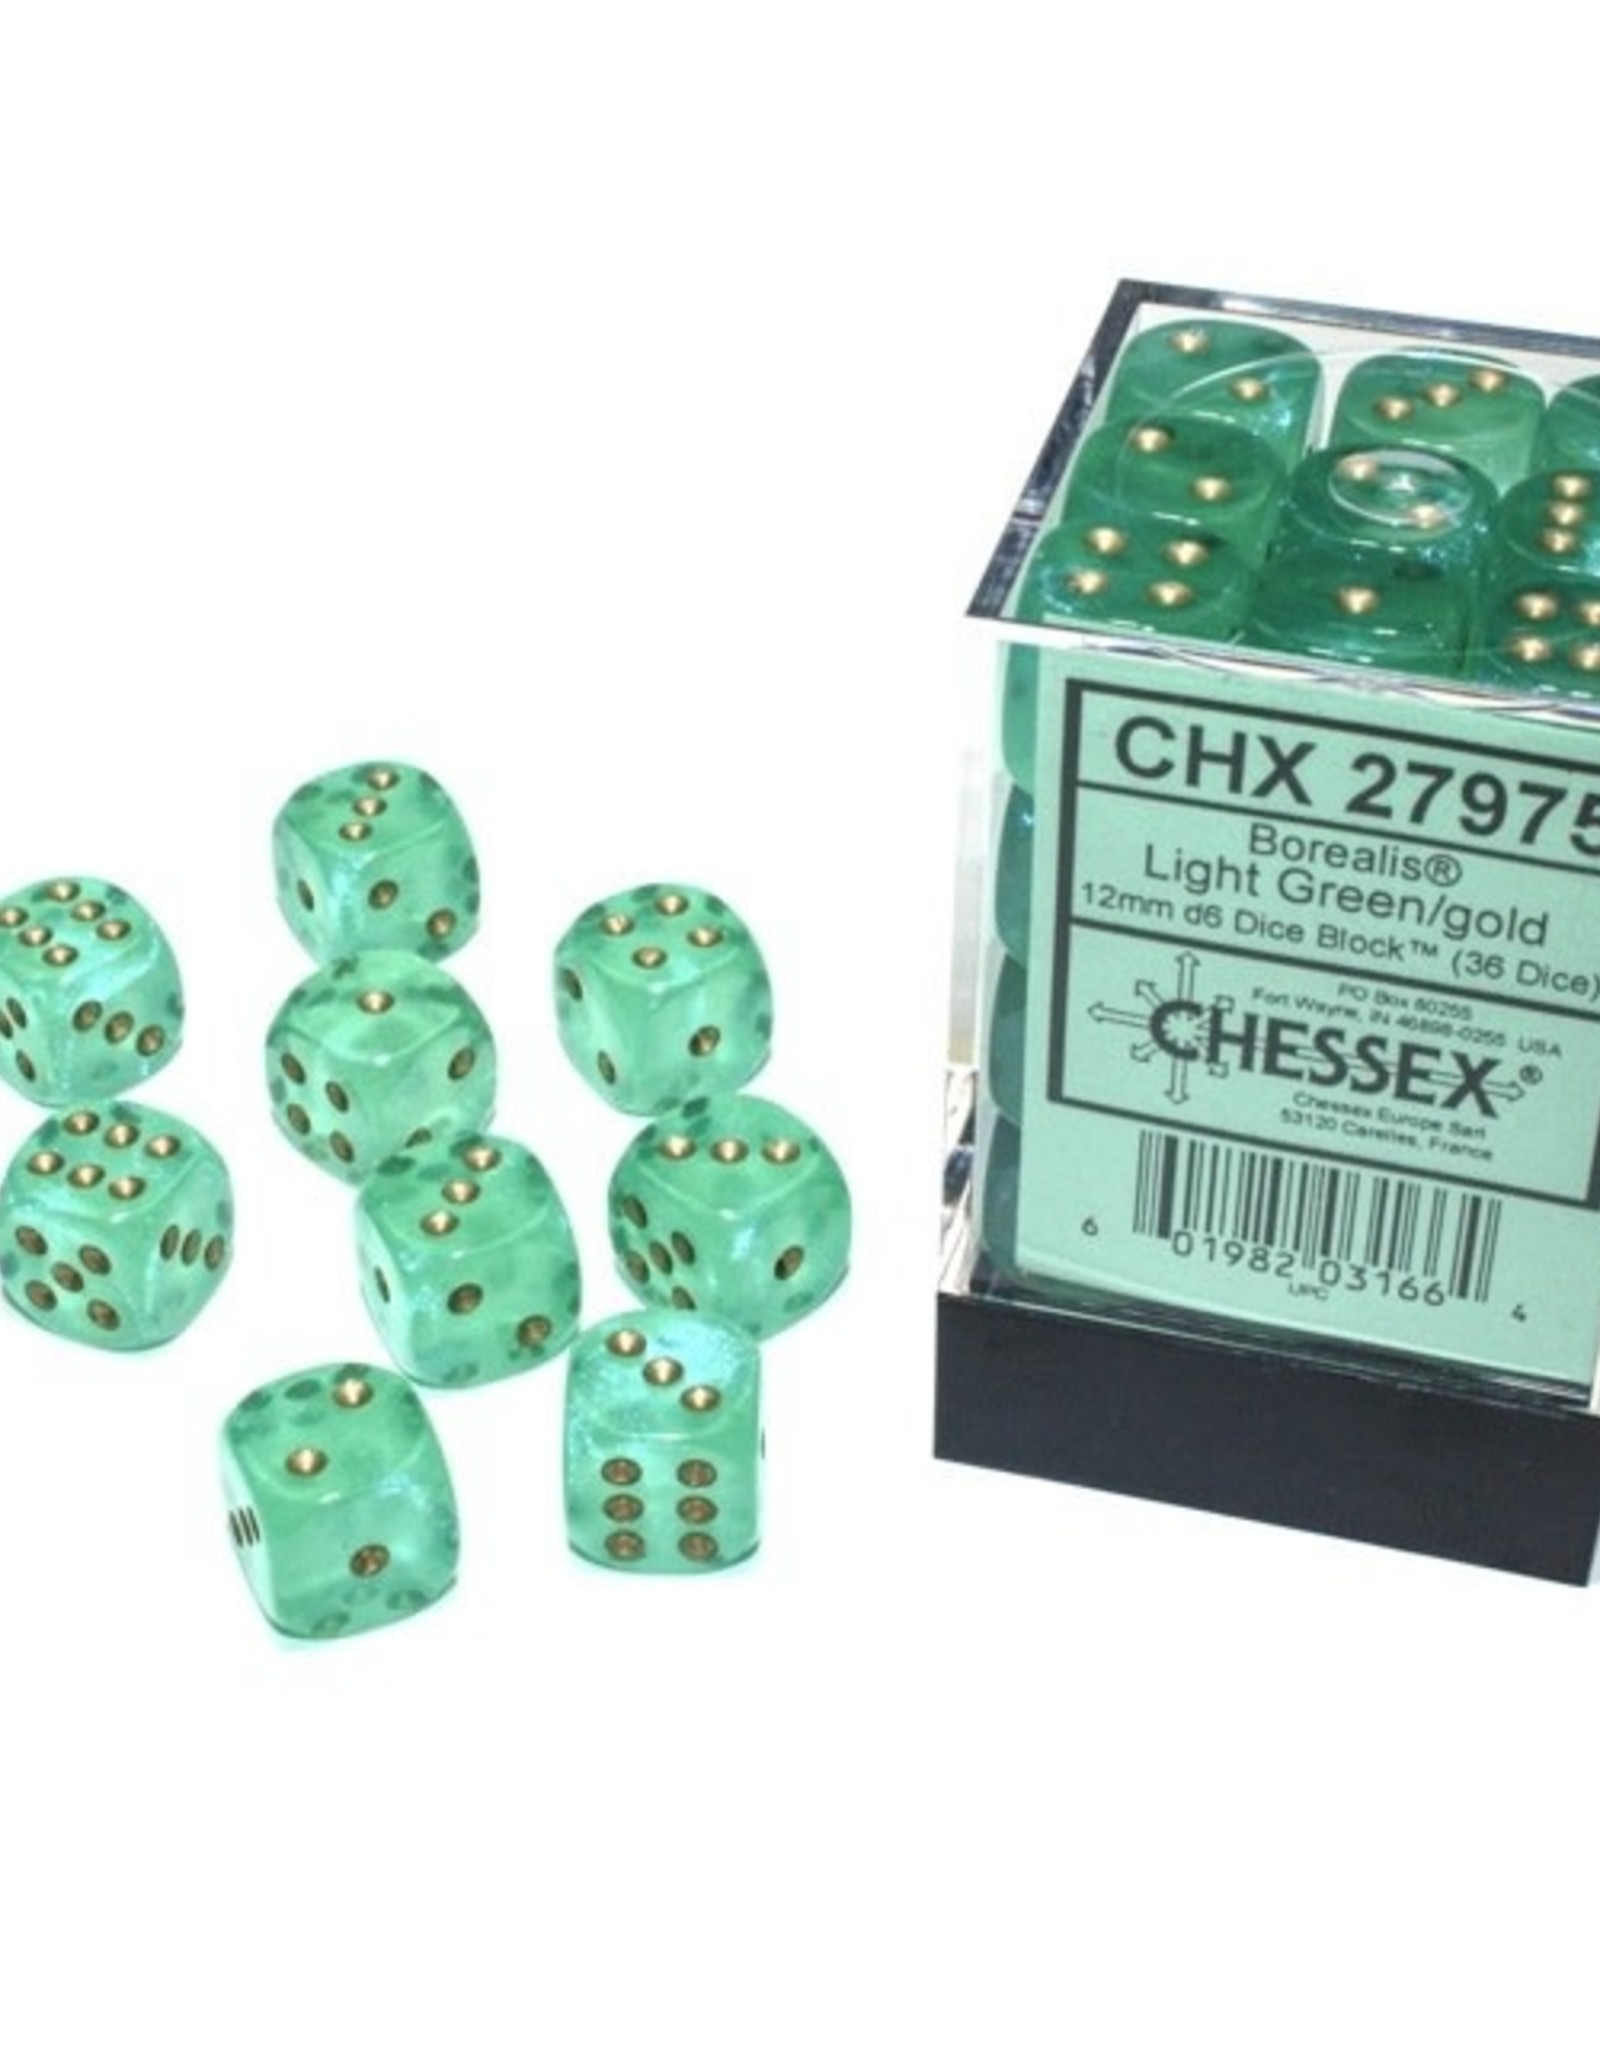 Chessex Dice Block D6 12mm 36ct. - Borealis Light Green/Gold